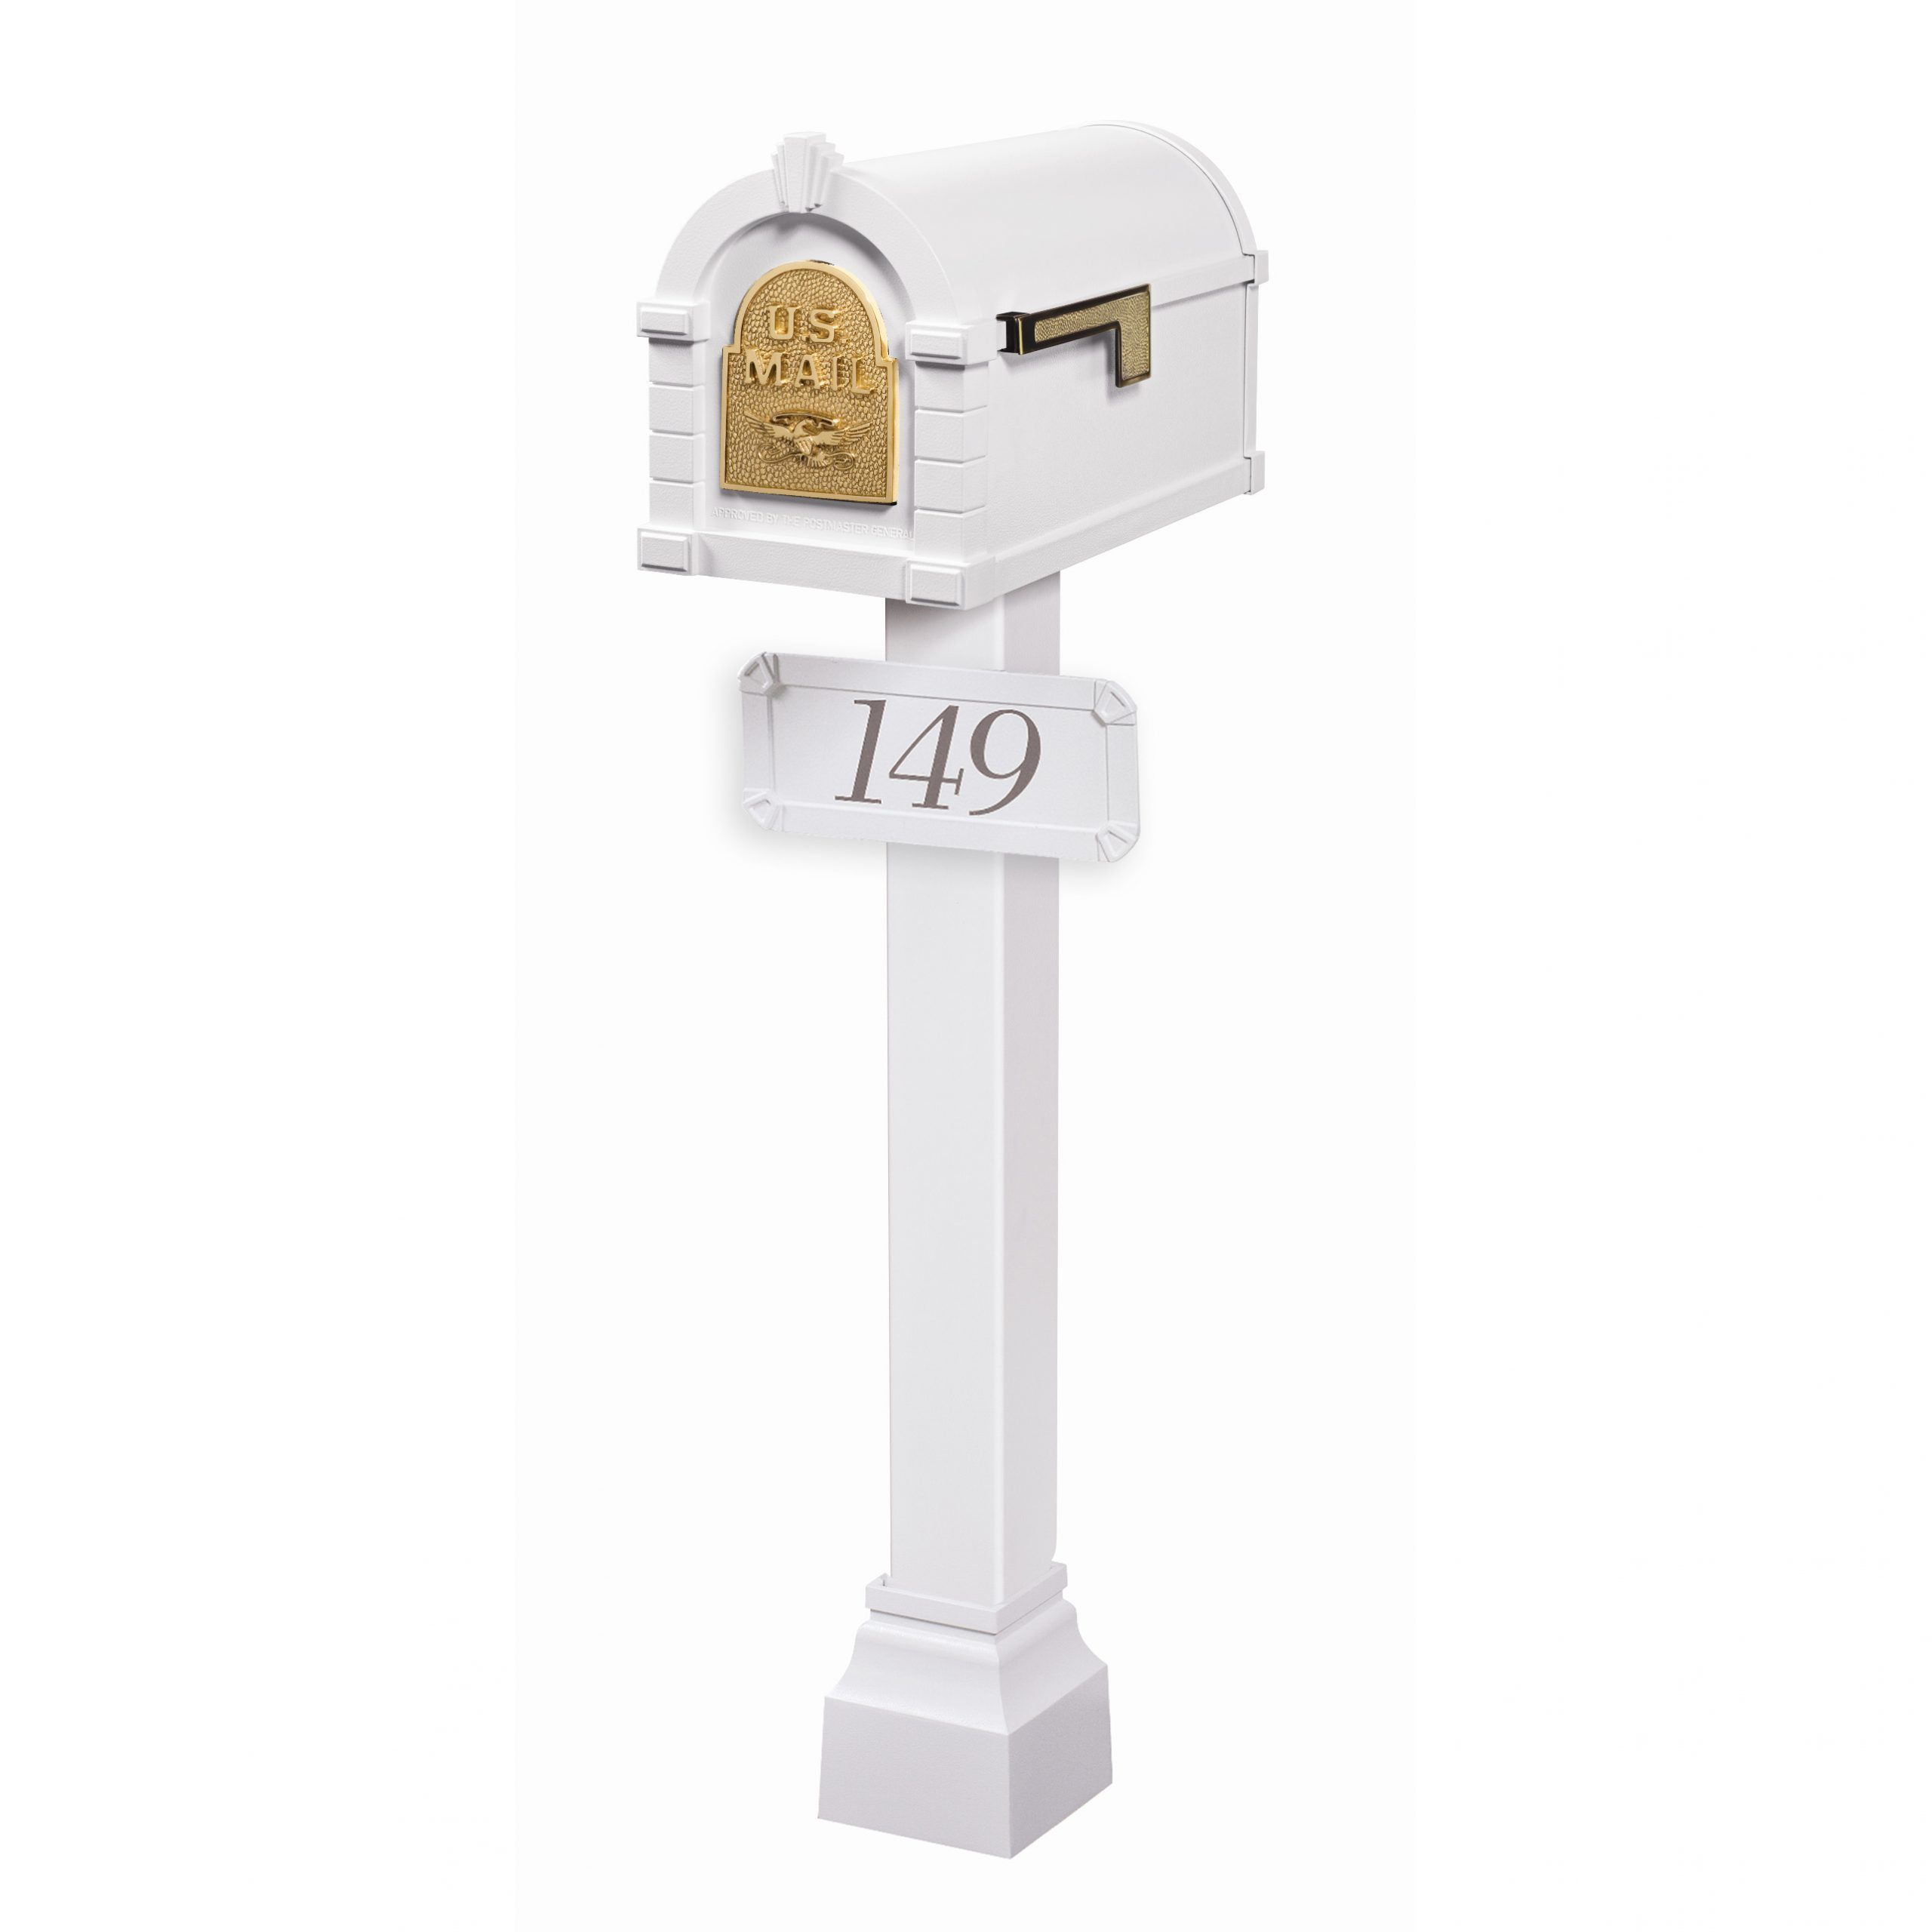 Gains Eagle Keystone Mailbox with Standard Post White